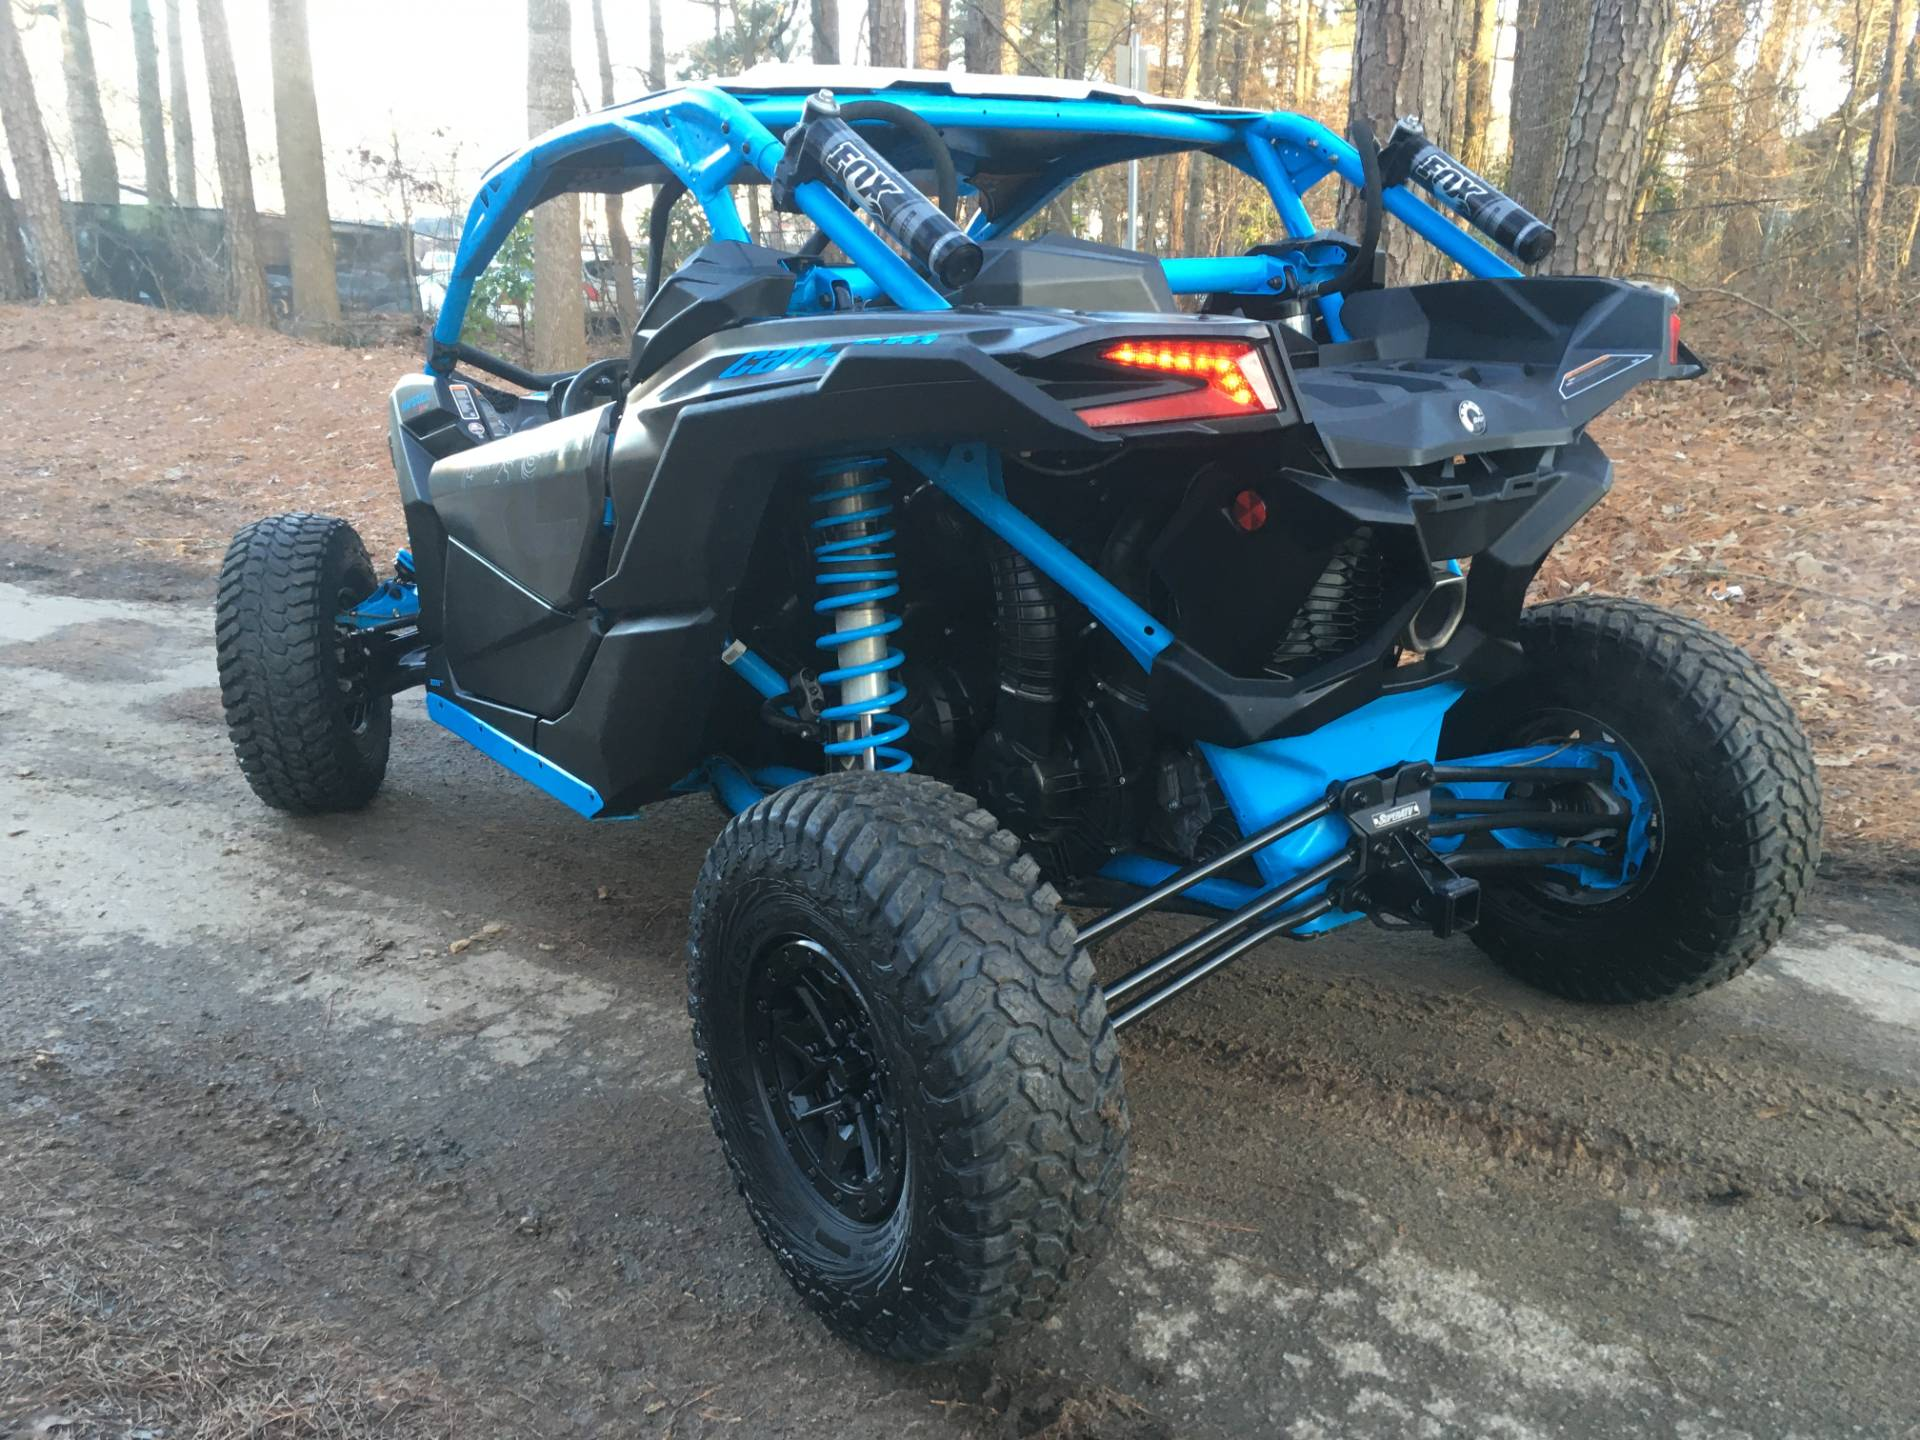 2019 CAN-AM MAVERICK X3 X RC TURBO R in Woodstock, Georgia - Photo 3